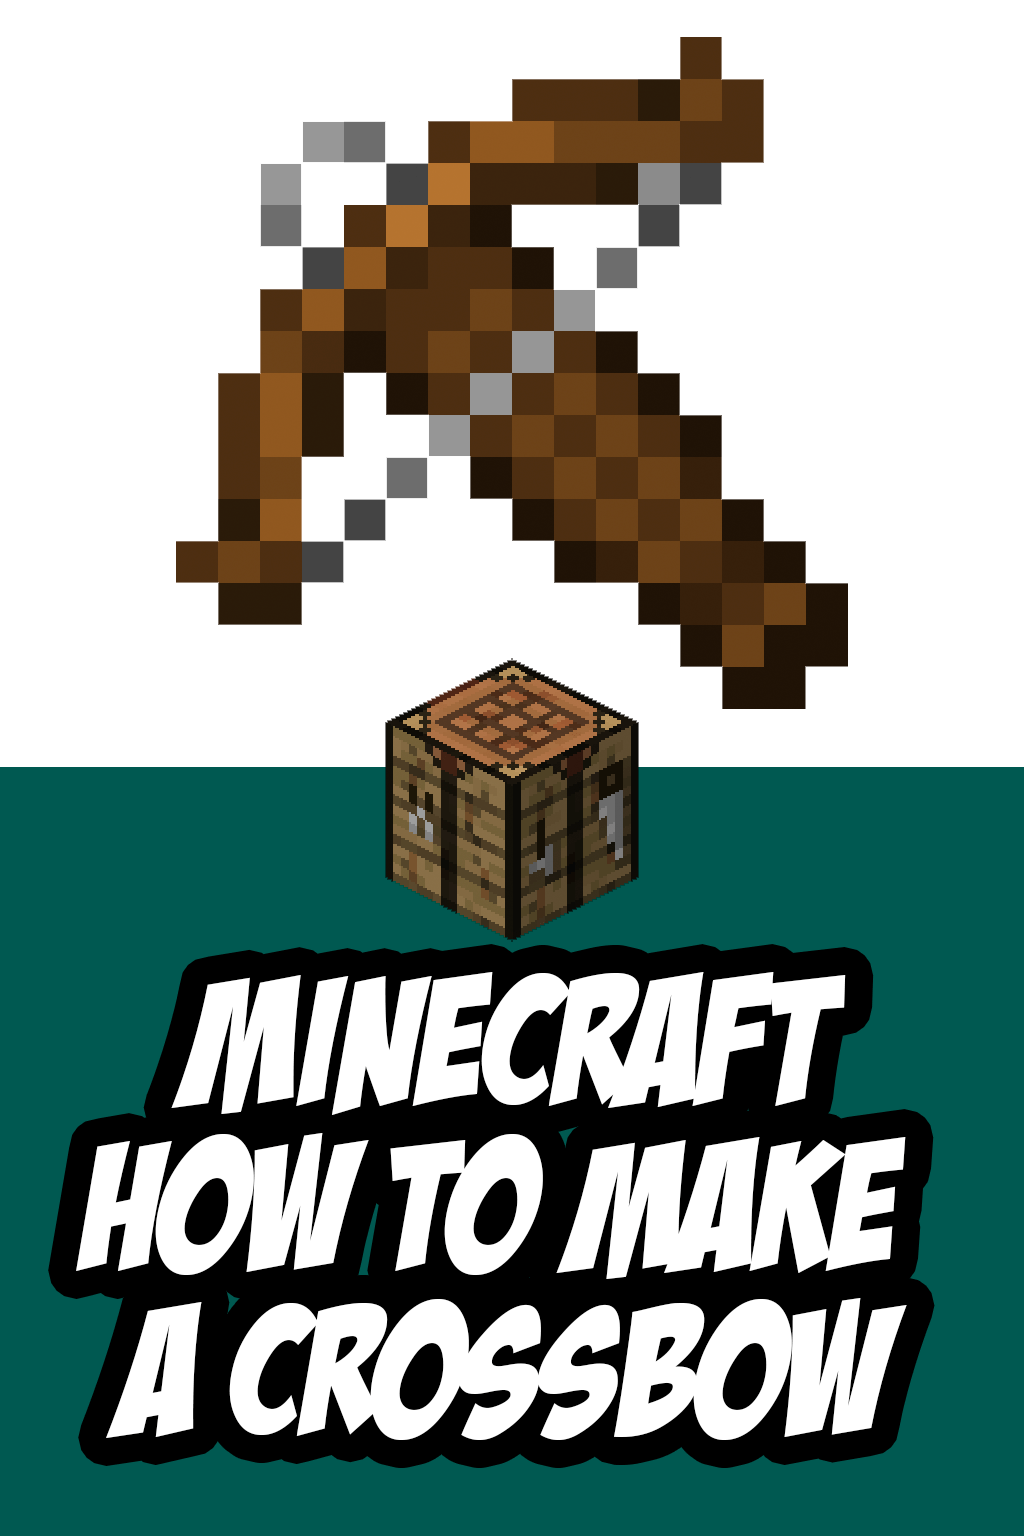 How To Make A Crossbow In Minecraft Minecraft Crossbow Minecraft Drawings